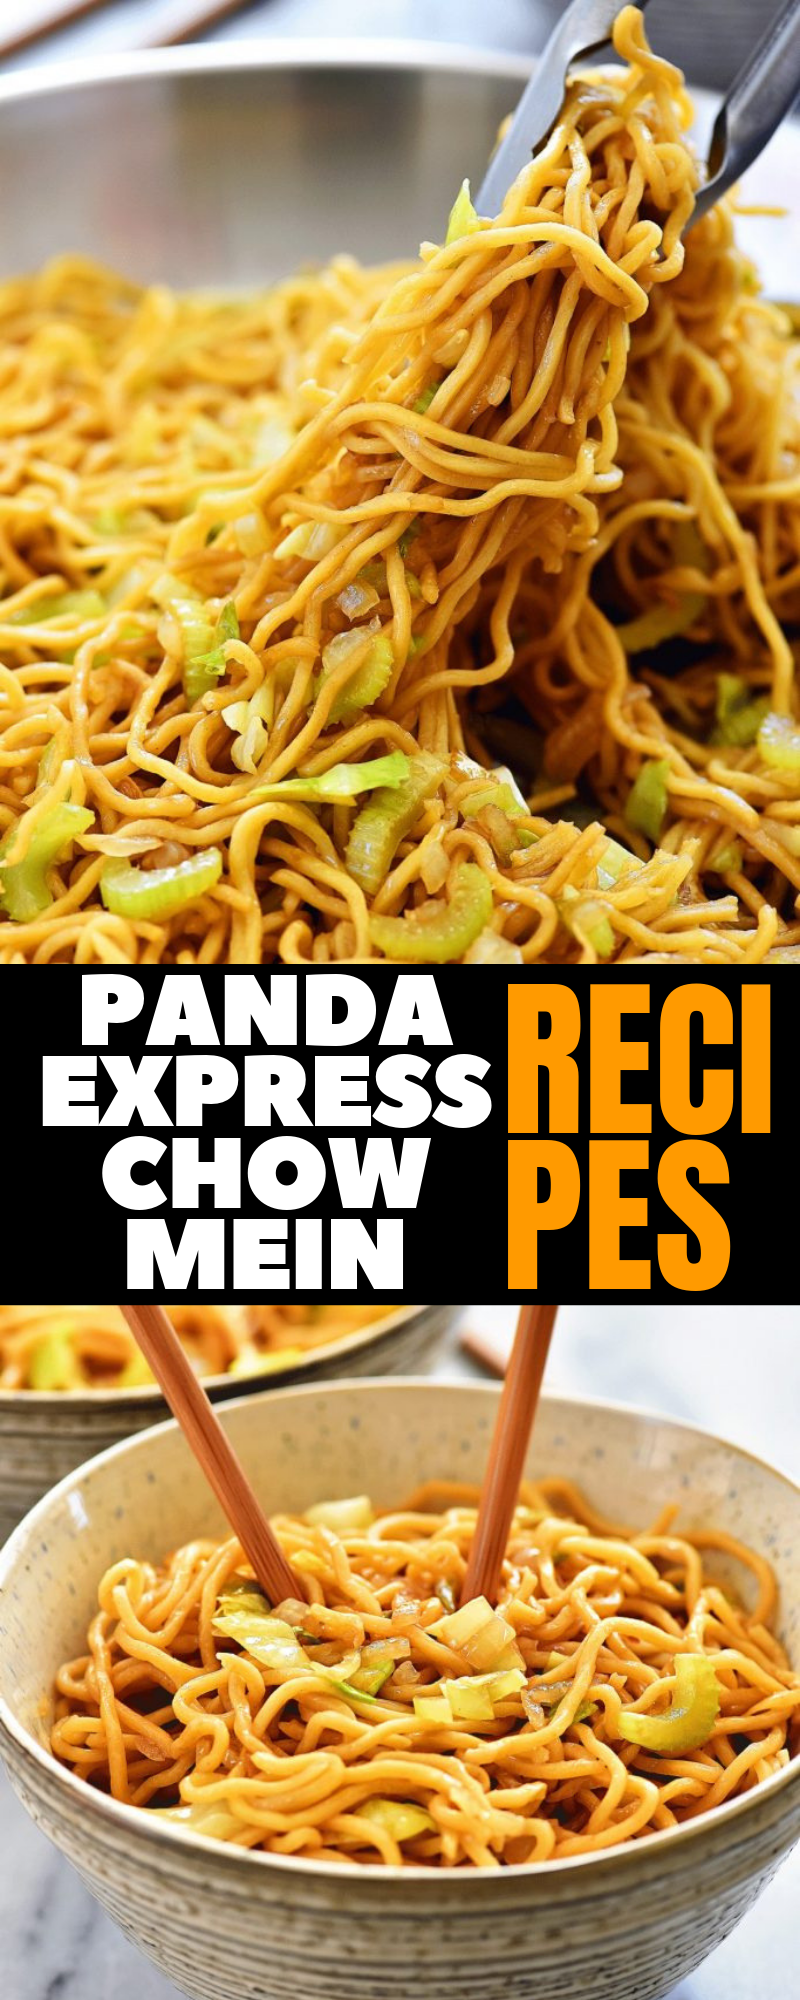 Easy Panda Express Chow Mein Dinner Recipes Dinnerrecipes Noodlerecipes Deliciousrecipes Chow Mein Panda Express Chow Mein Best Chinese Food